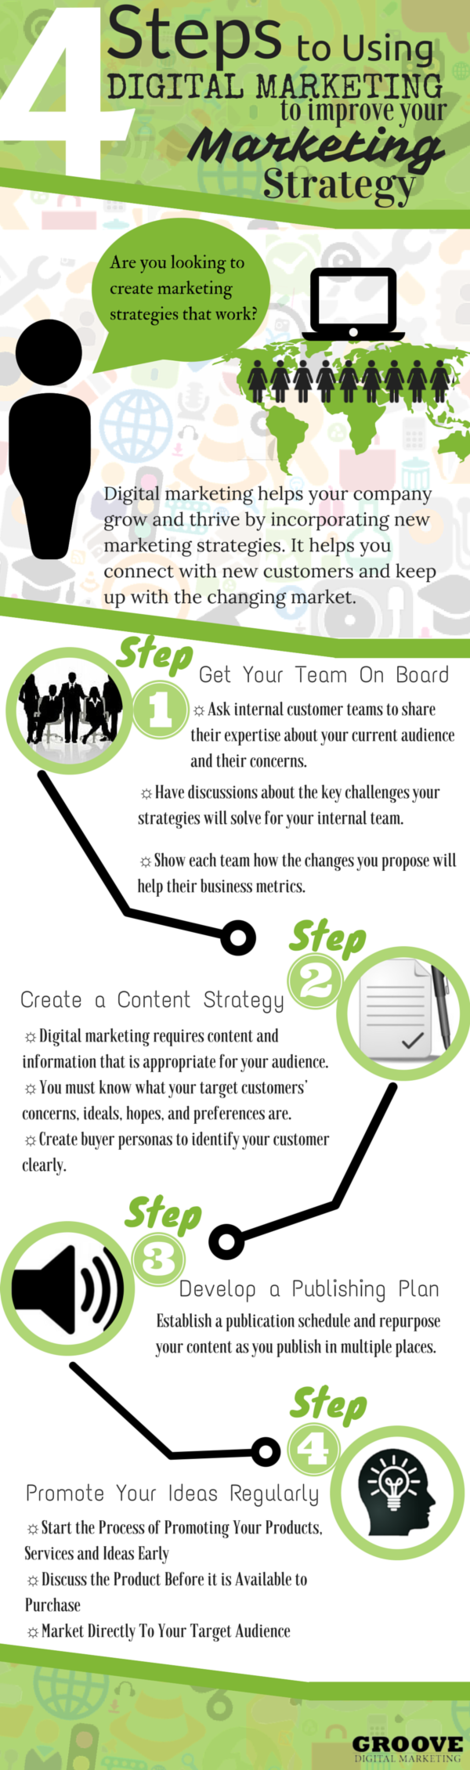 4 Easy Steps To A Strong Digital Marketing Strategy (Infographic)